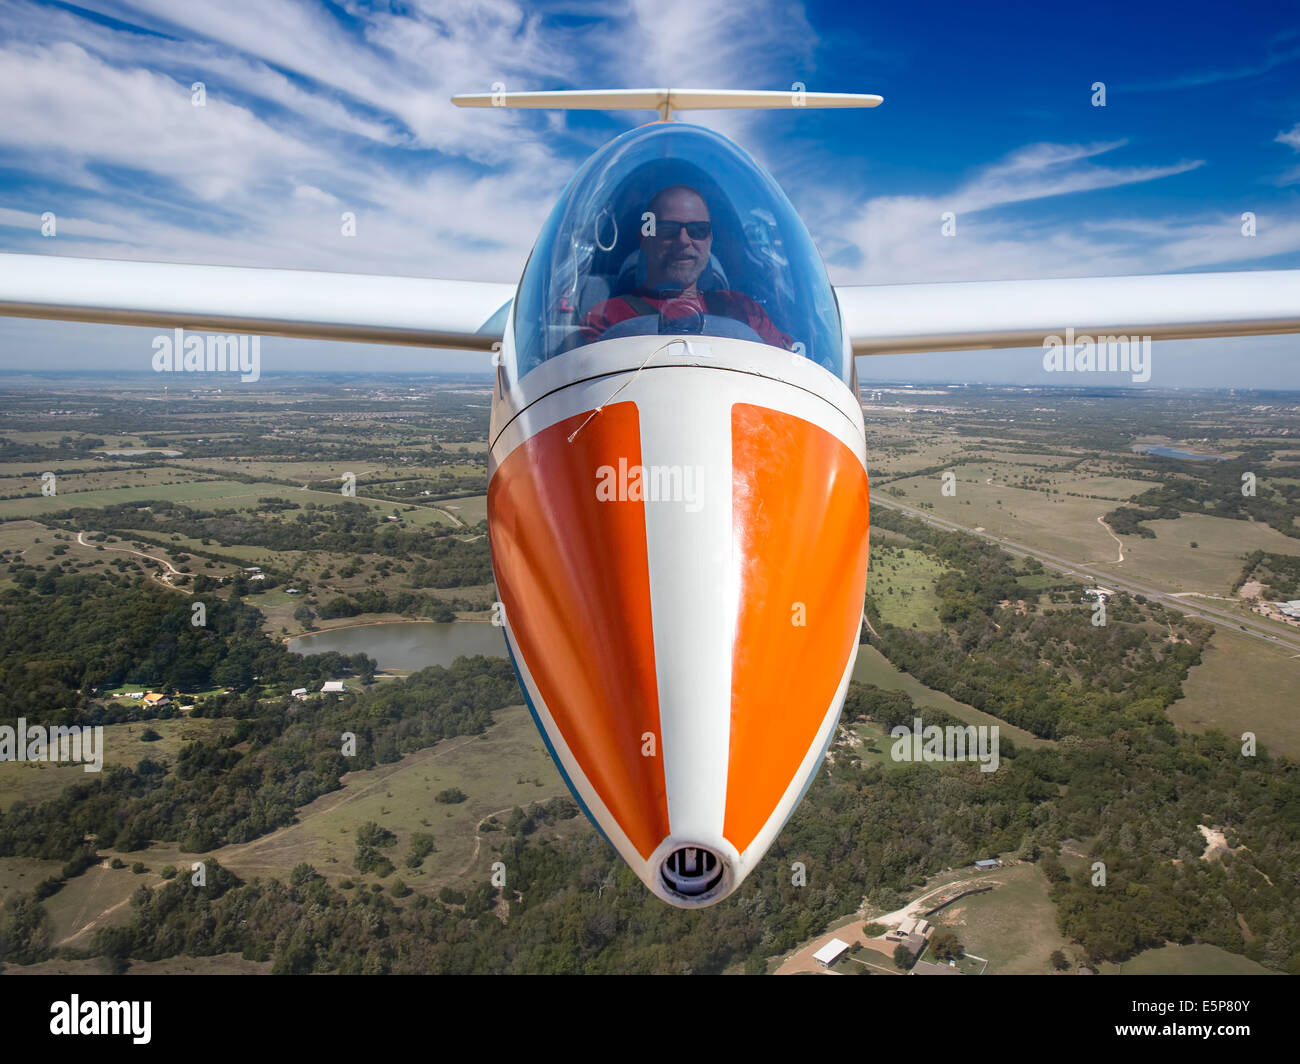 Front view of Sailplane in flight with view of Pilot - Stock Image